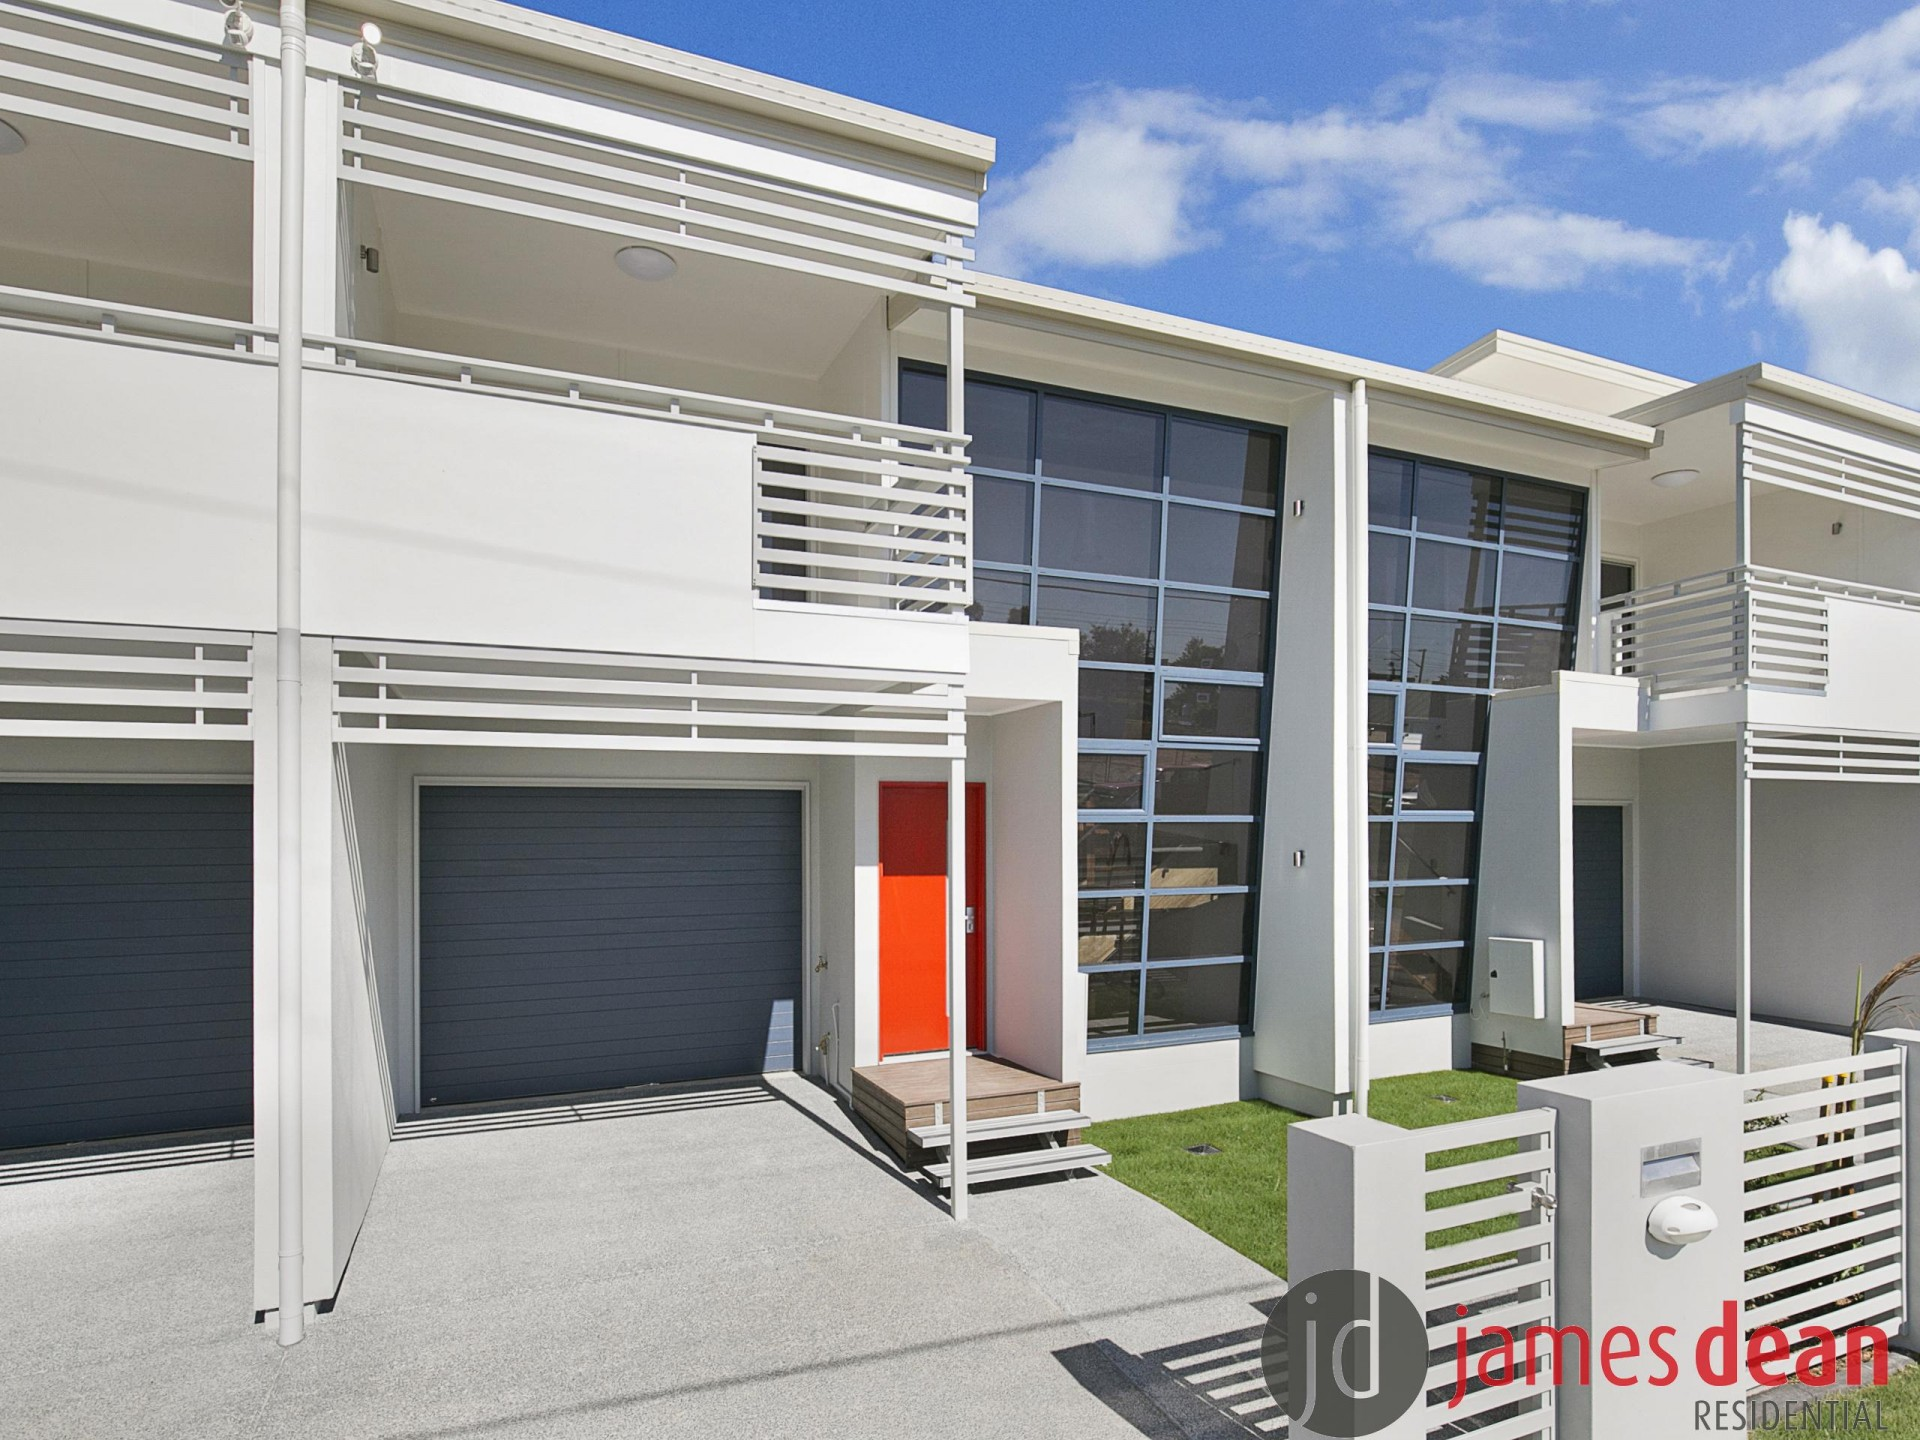 Stylish Three Bedroom Wynnum Central Townhouse Built With Architectural Flair